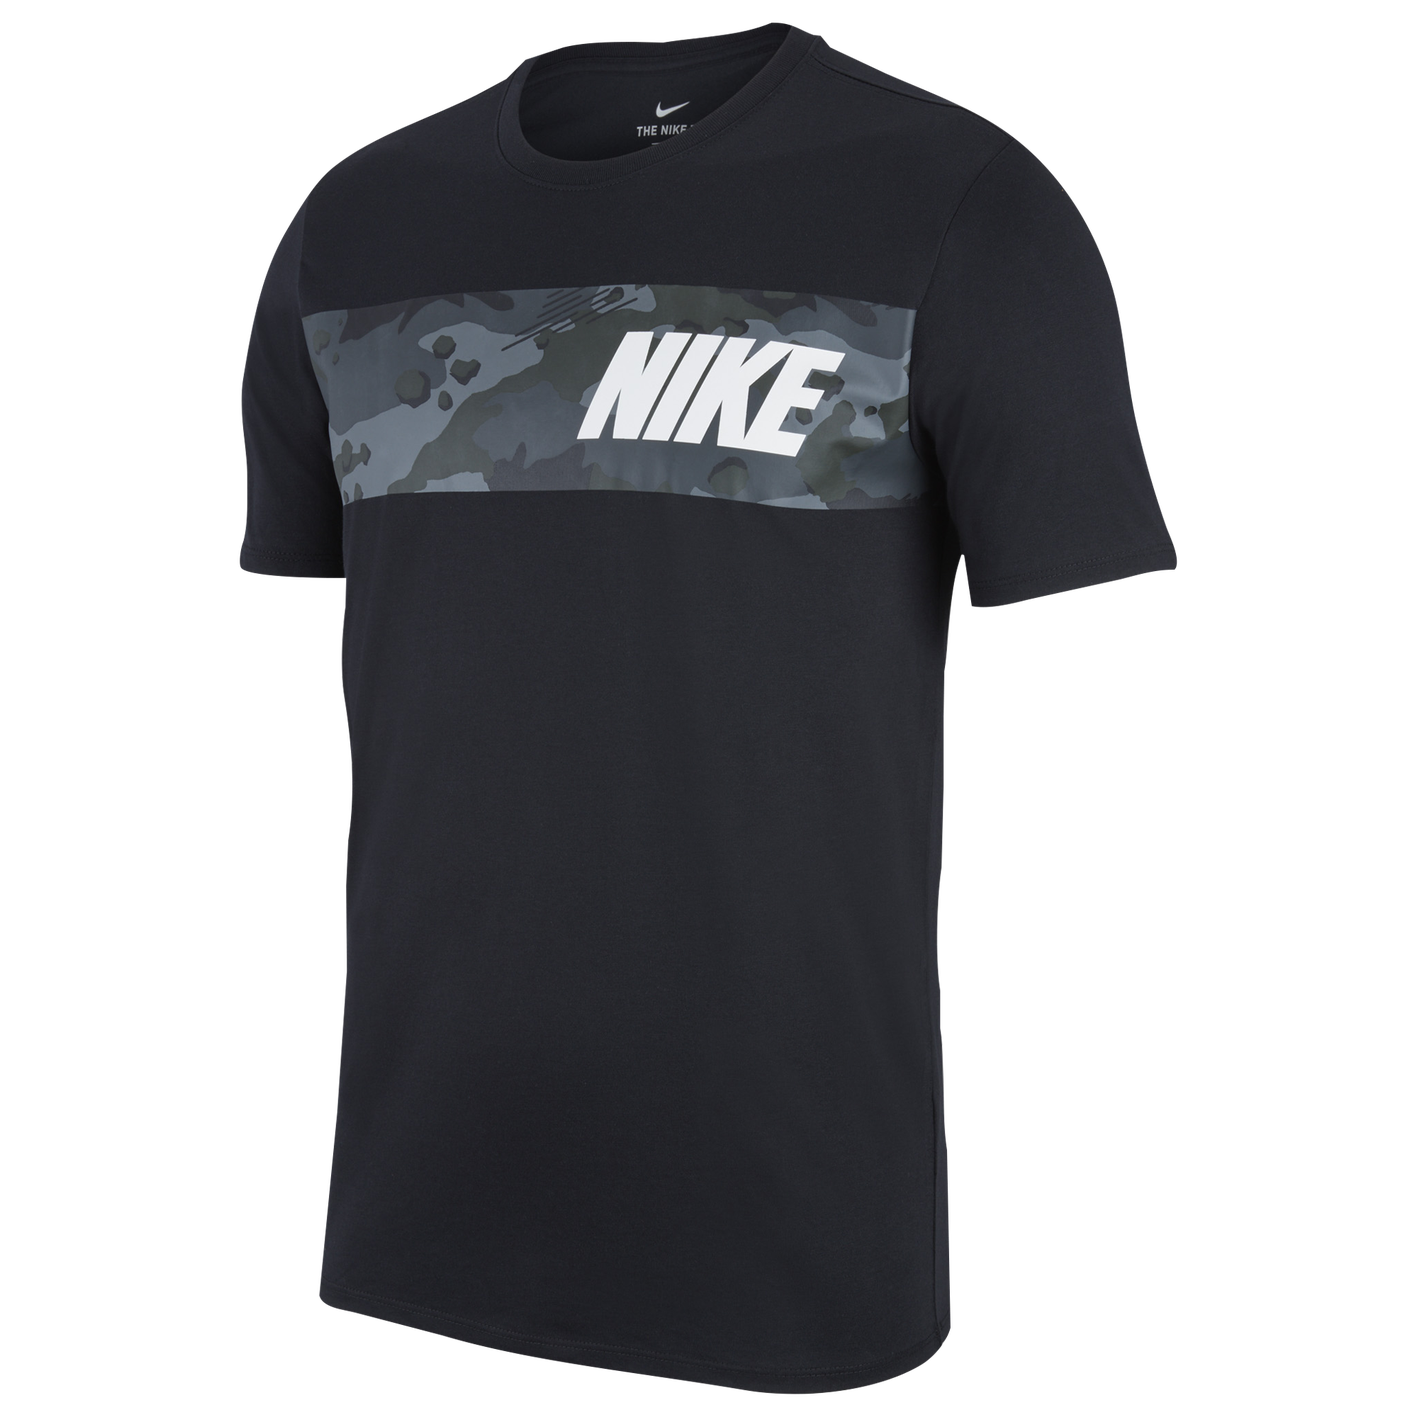 41f935ac Nike Dri-FIT Cotton T-Shirt - Men's - Training - Clothing - Black ...